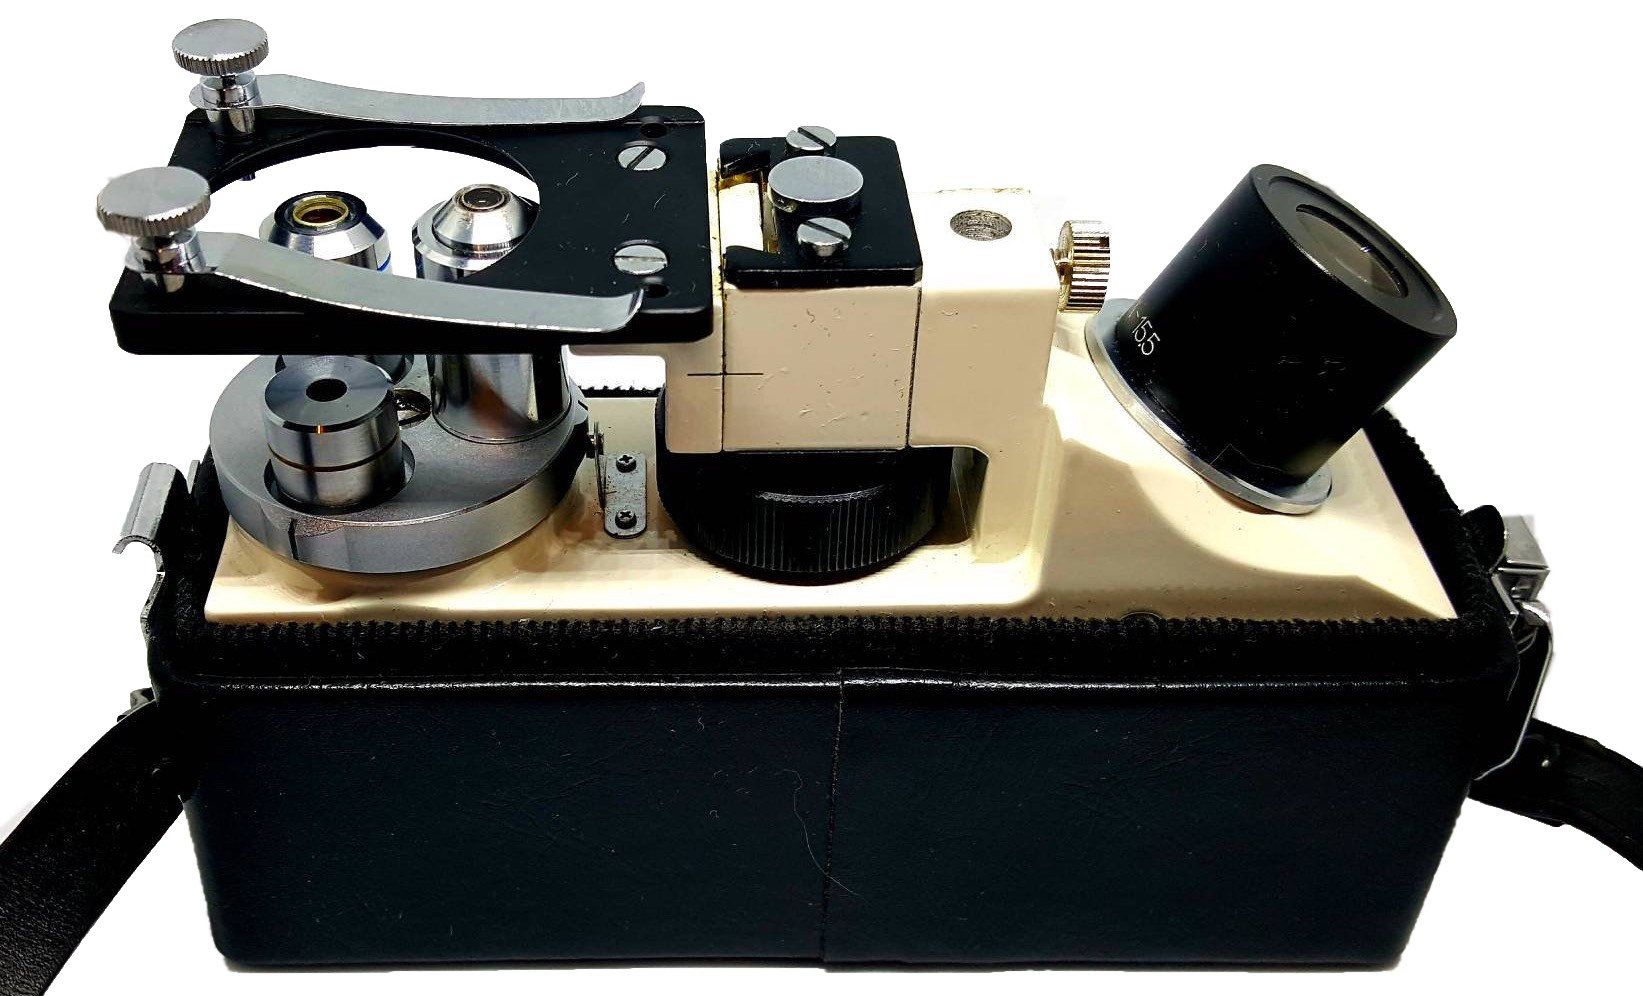 Check out this compact, portable Microscope The FM31LWD